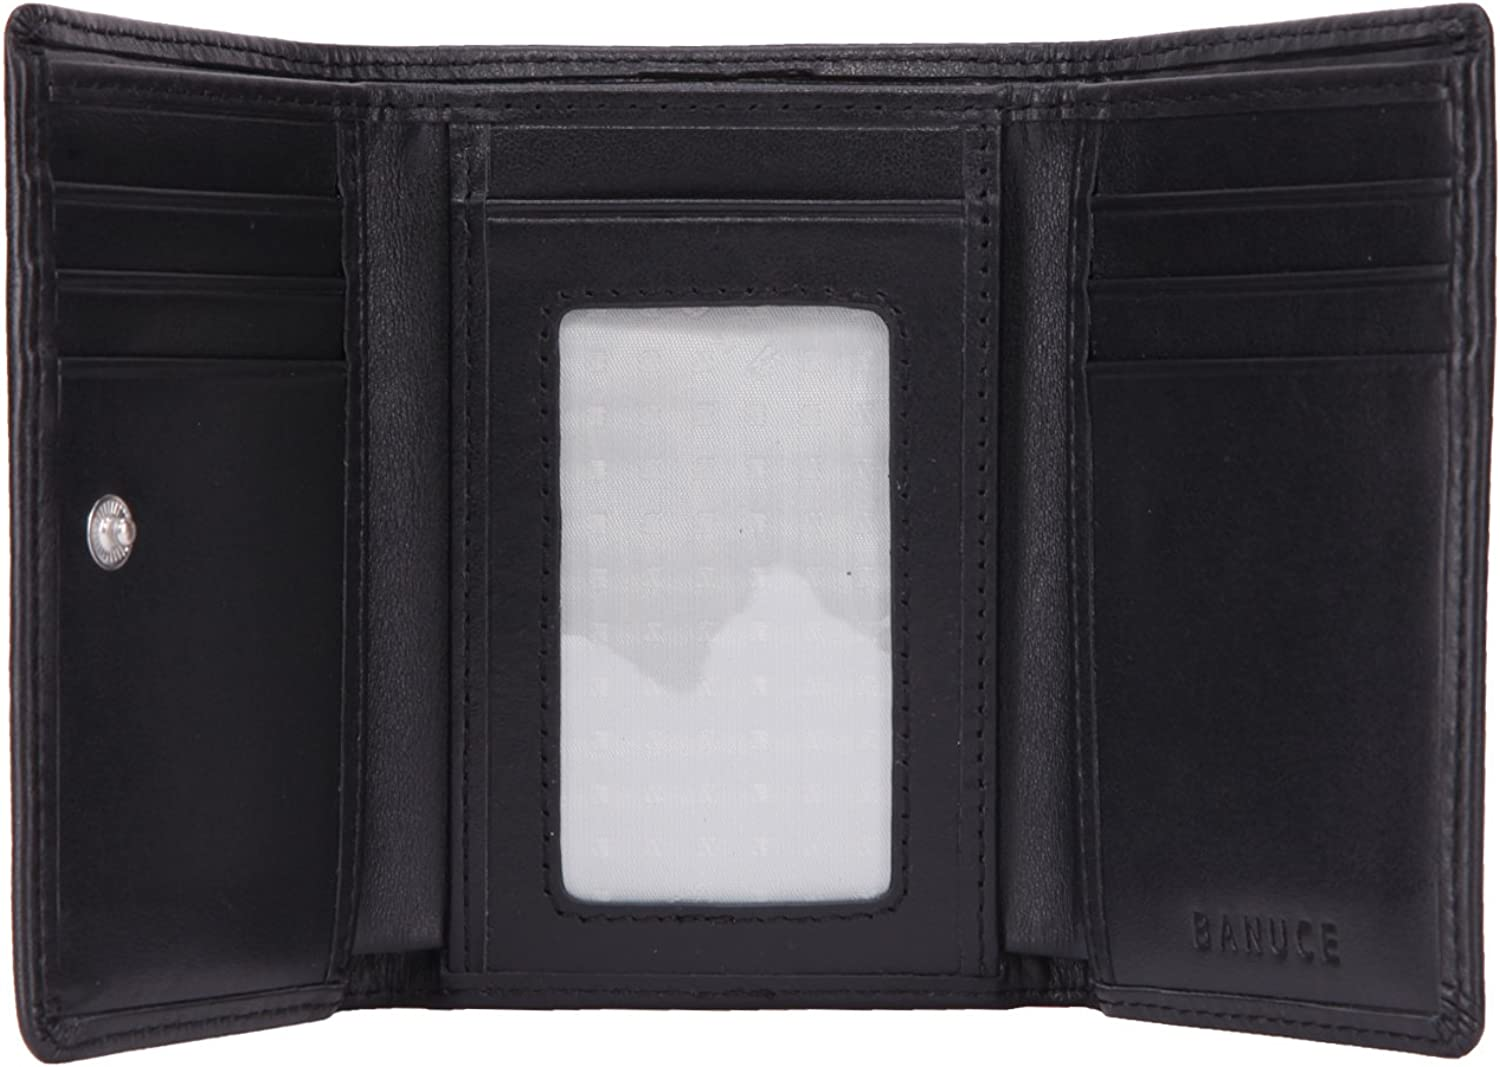 Banuce Real Leather Slim Trifold Wallet for Women Small Clutch Purse Card Holder with ID Window